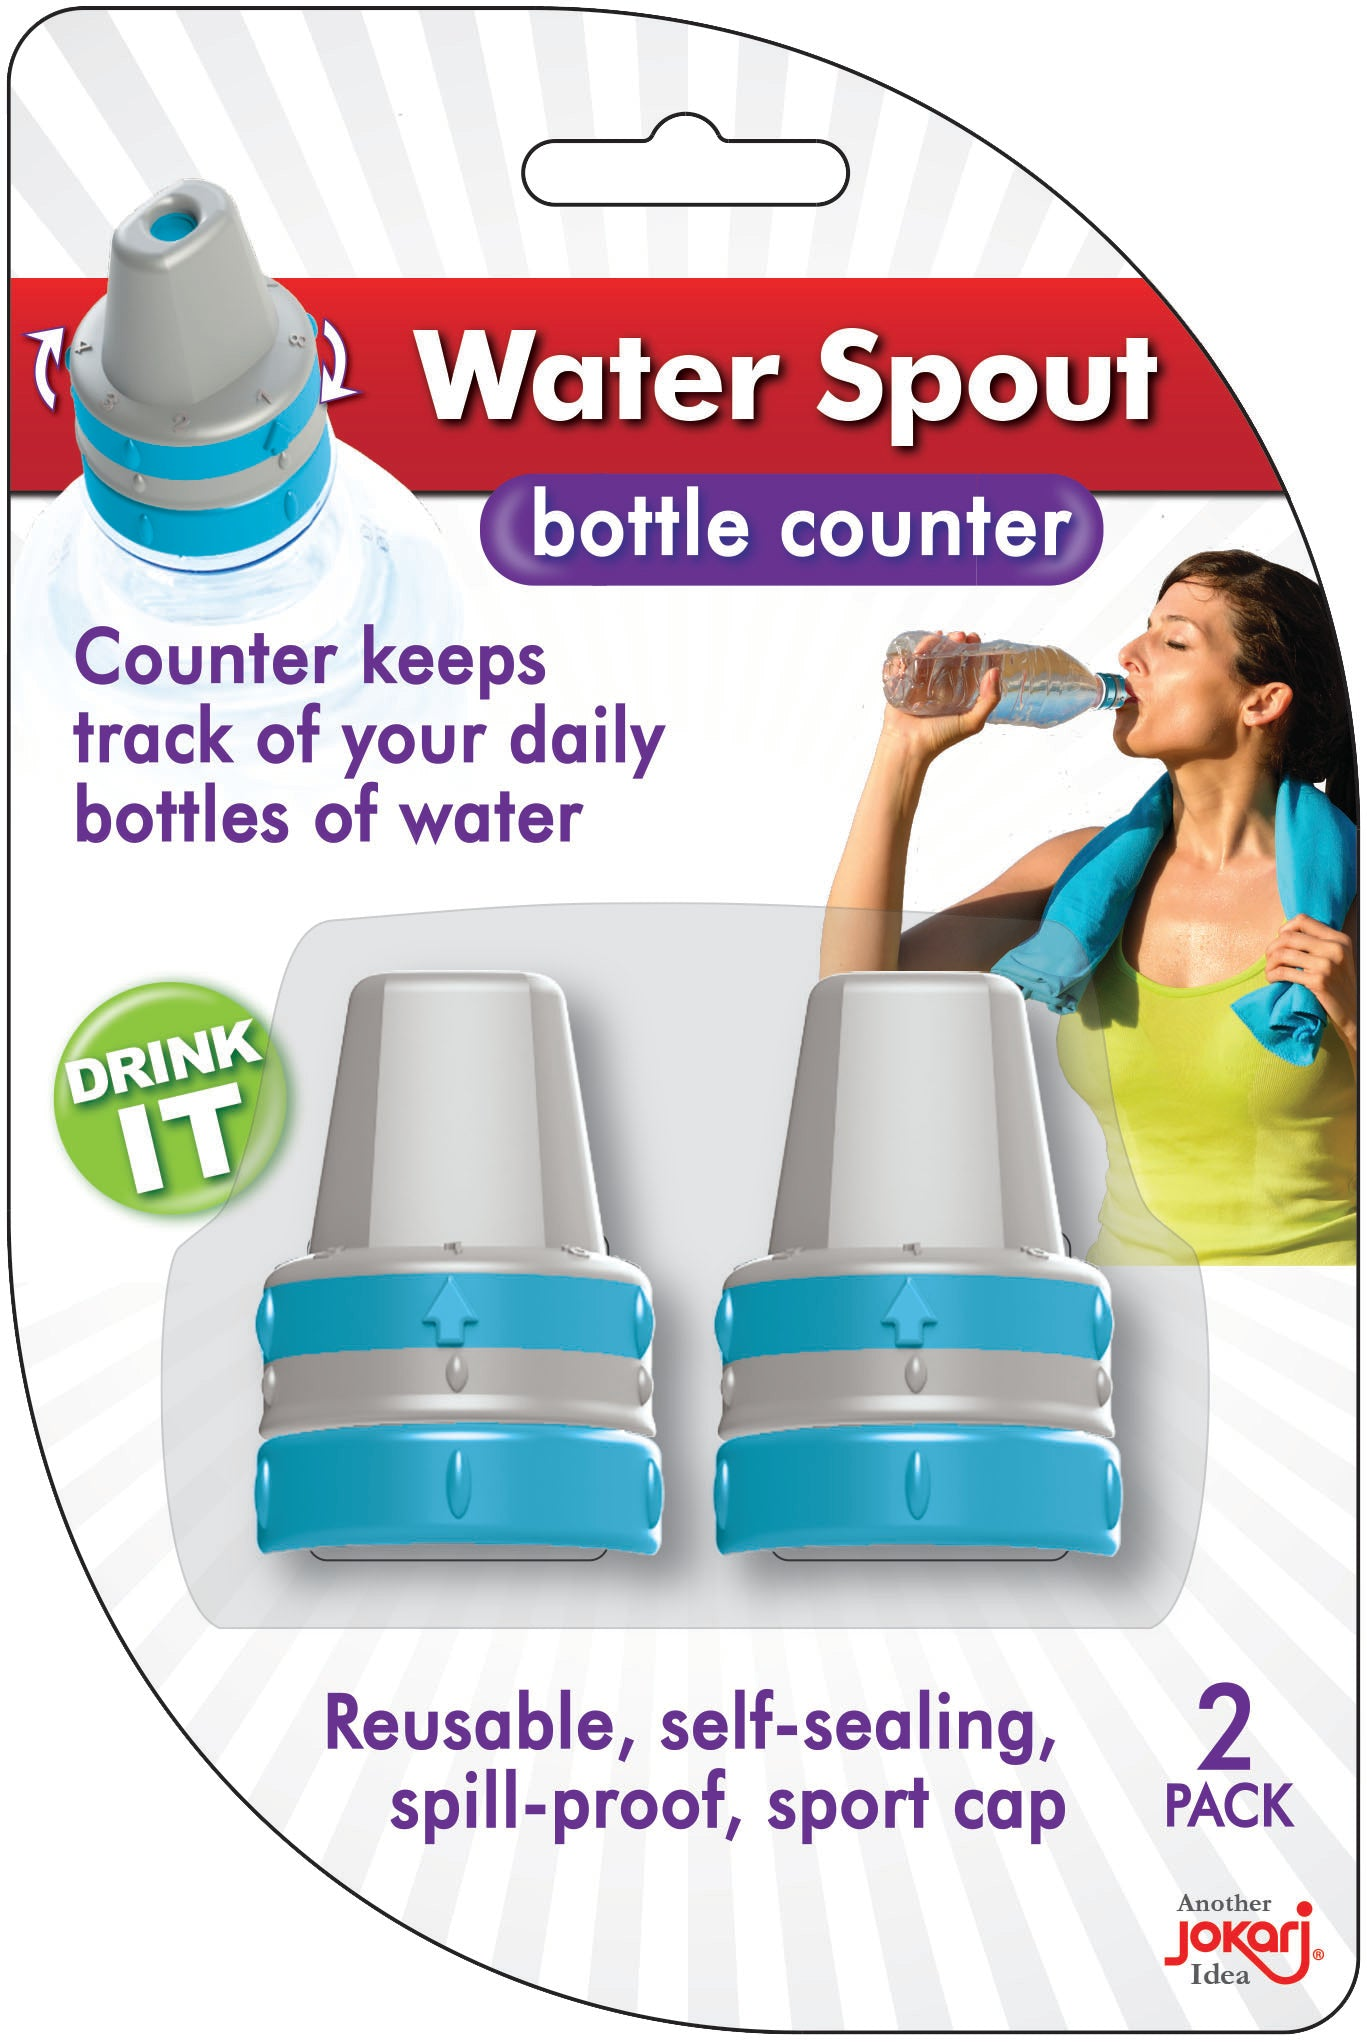 Water Spout, 2 pack